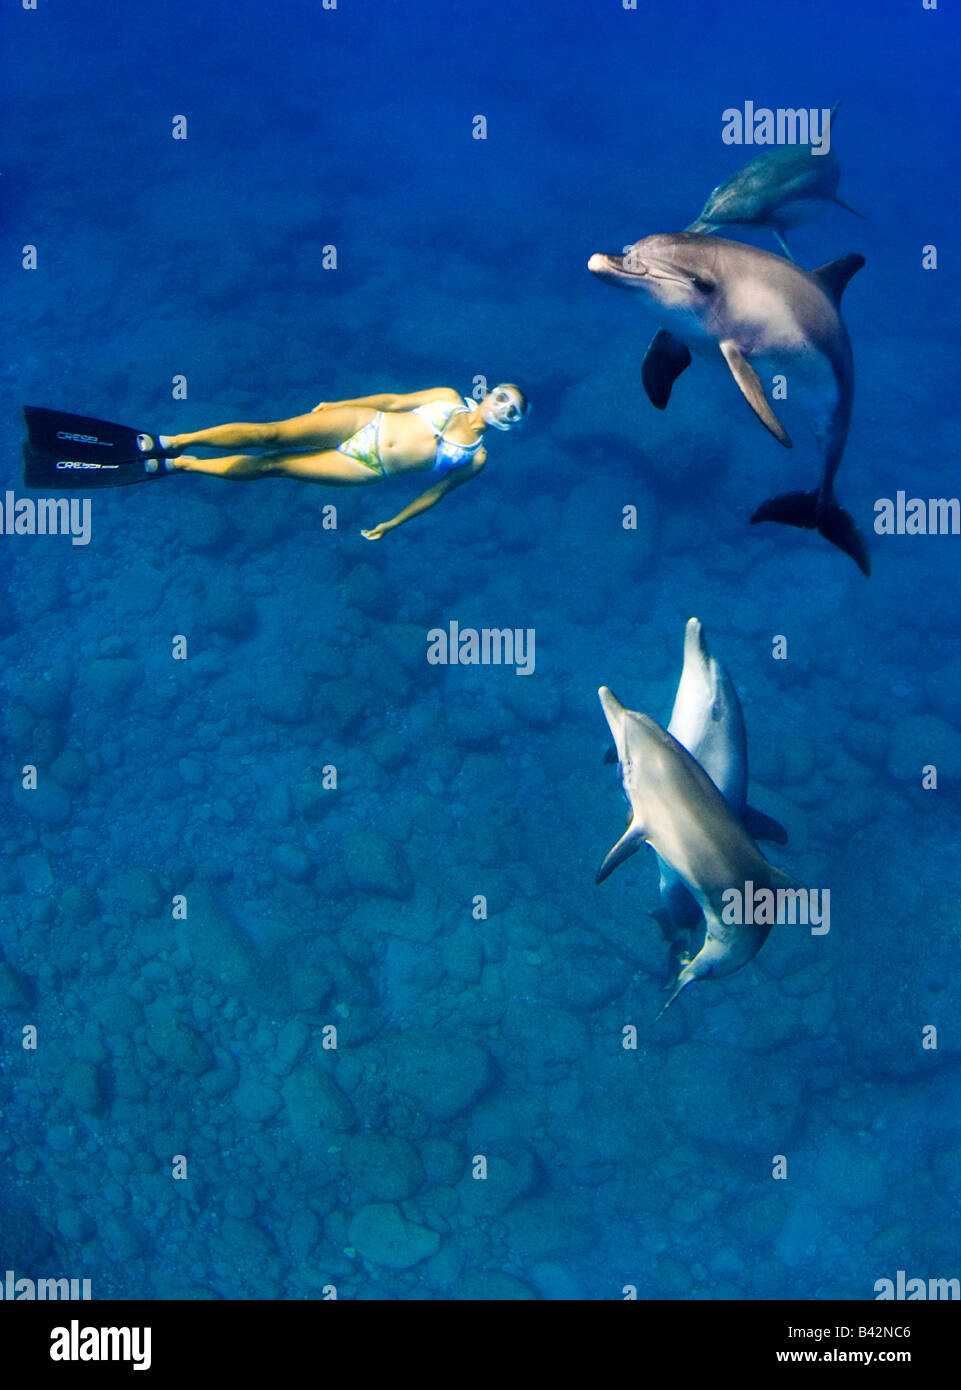 Indo Pacific Bottlenose Dolphins and Freediver Tursiops aduncus Mukojima Group Ogasawara Islands Pacific Ocean Japan - Stock Image